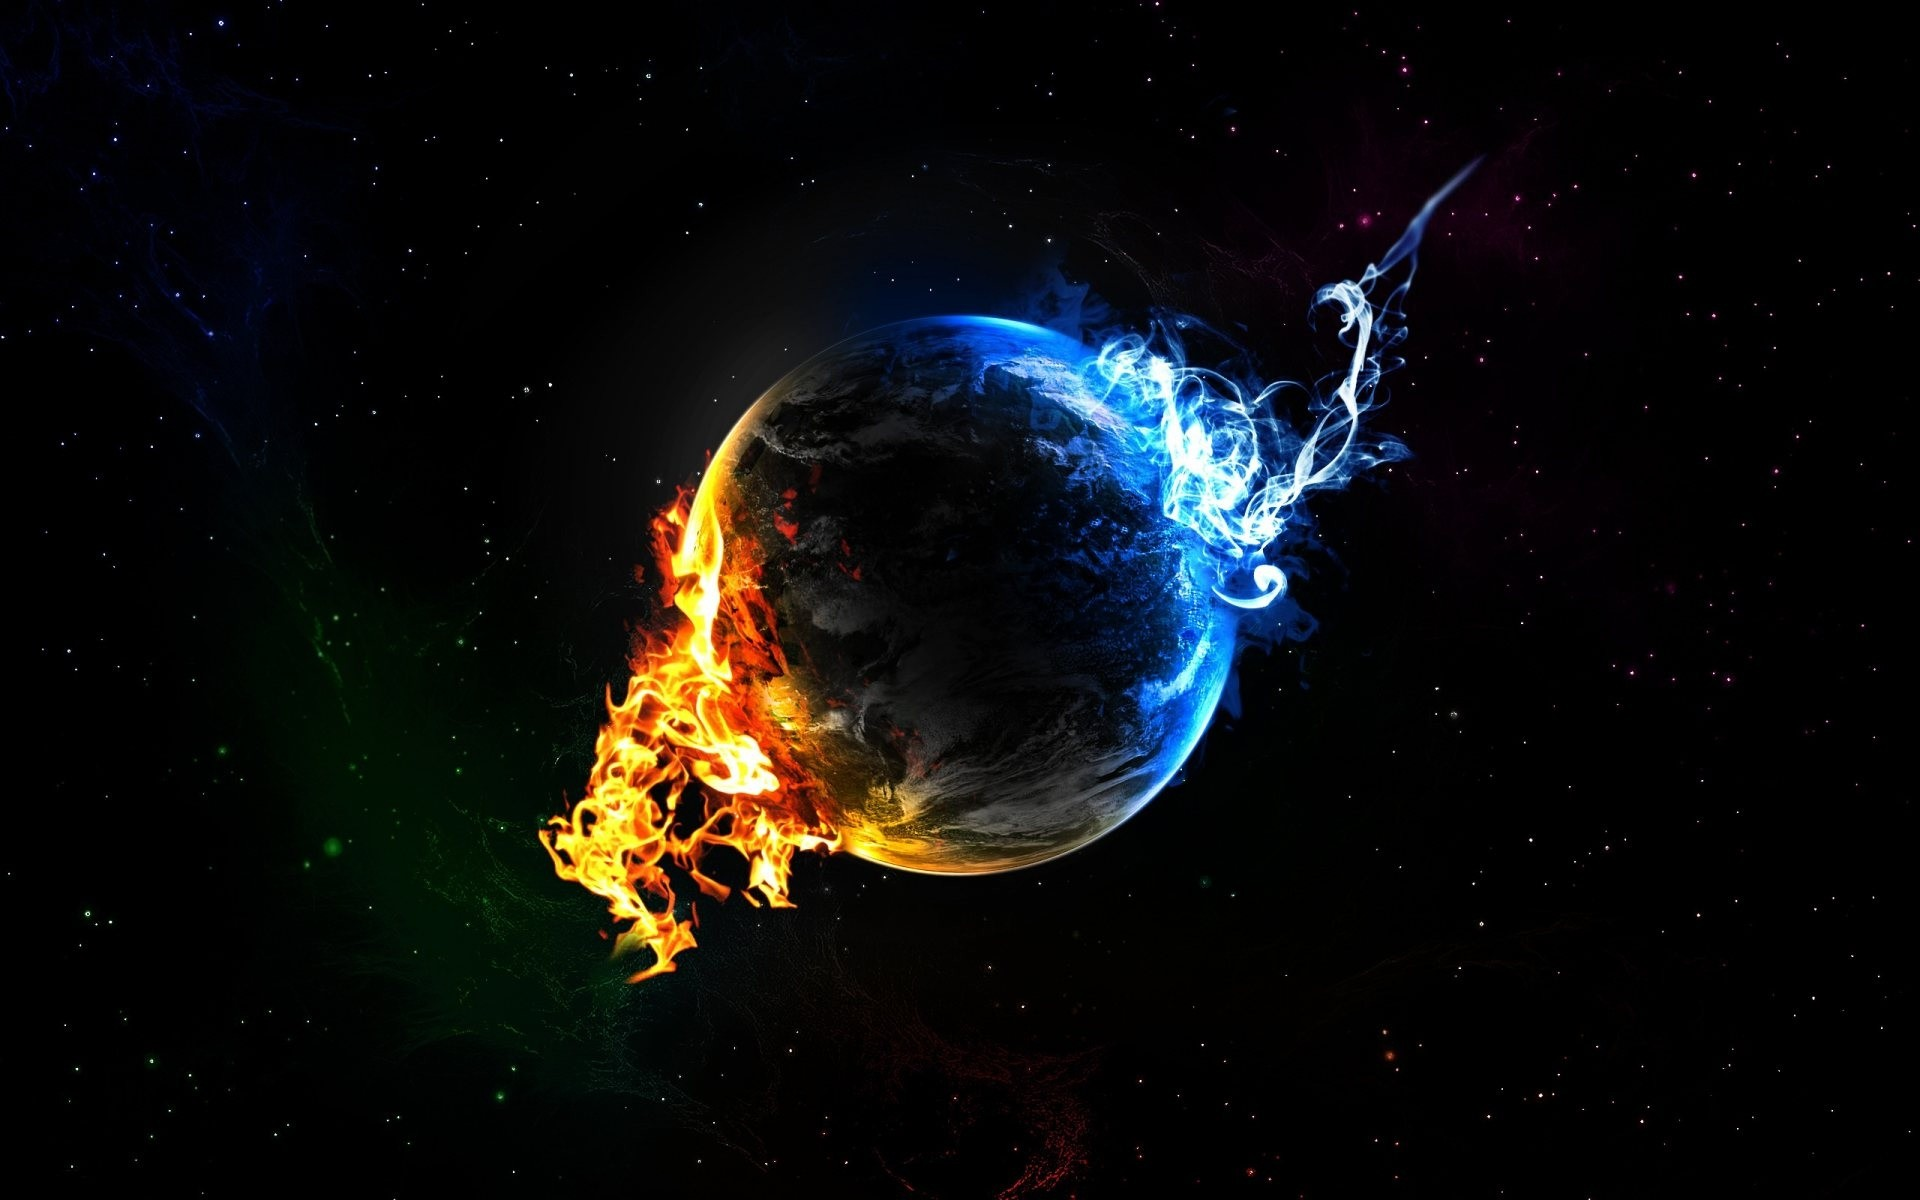 Fire And Ice Wallpaper Desktop Background